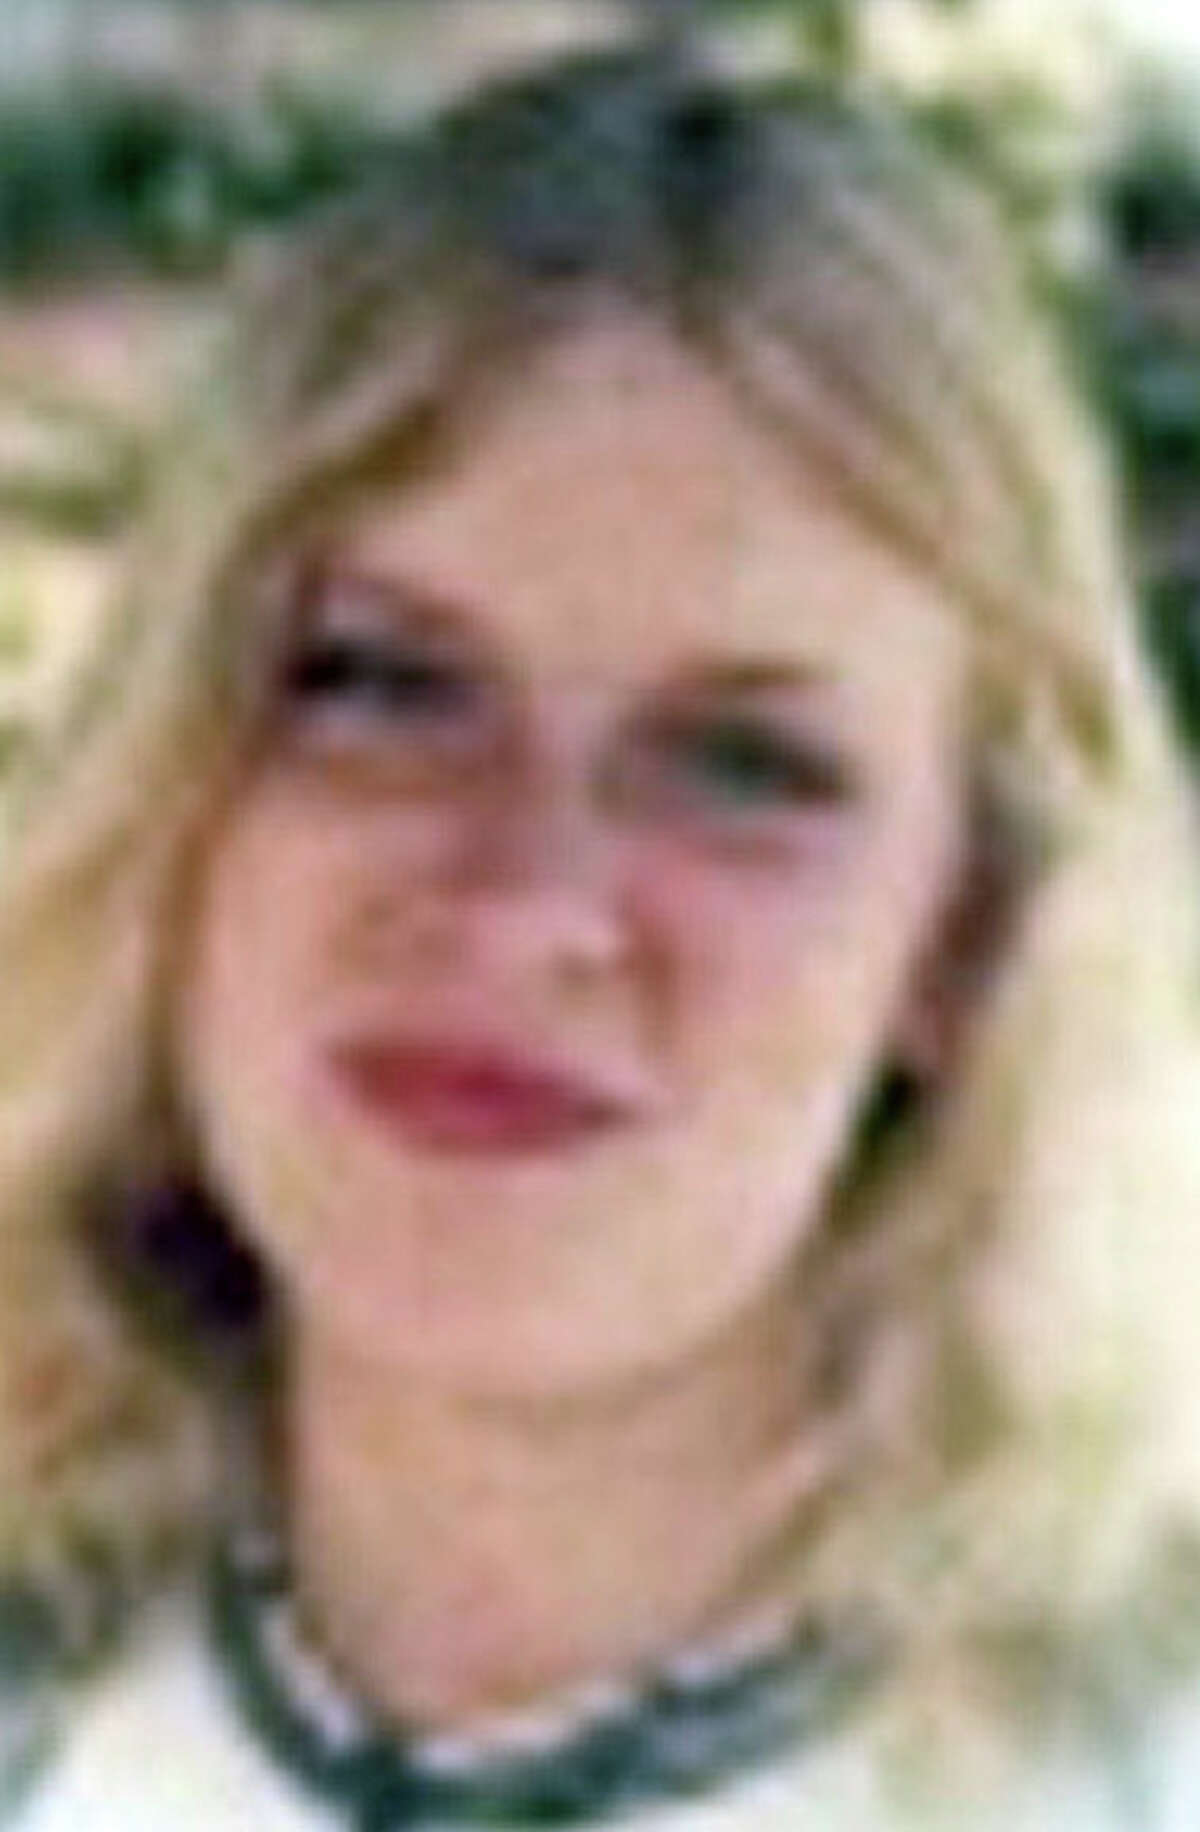 Gisele Ann Lovvorn, 17, disappeared July 17, 1982. Her remains were found Sept.25, 1982.